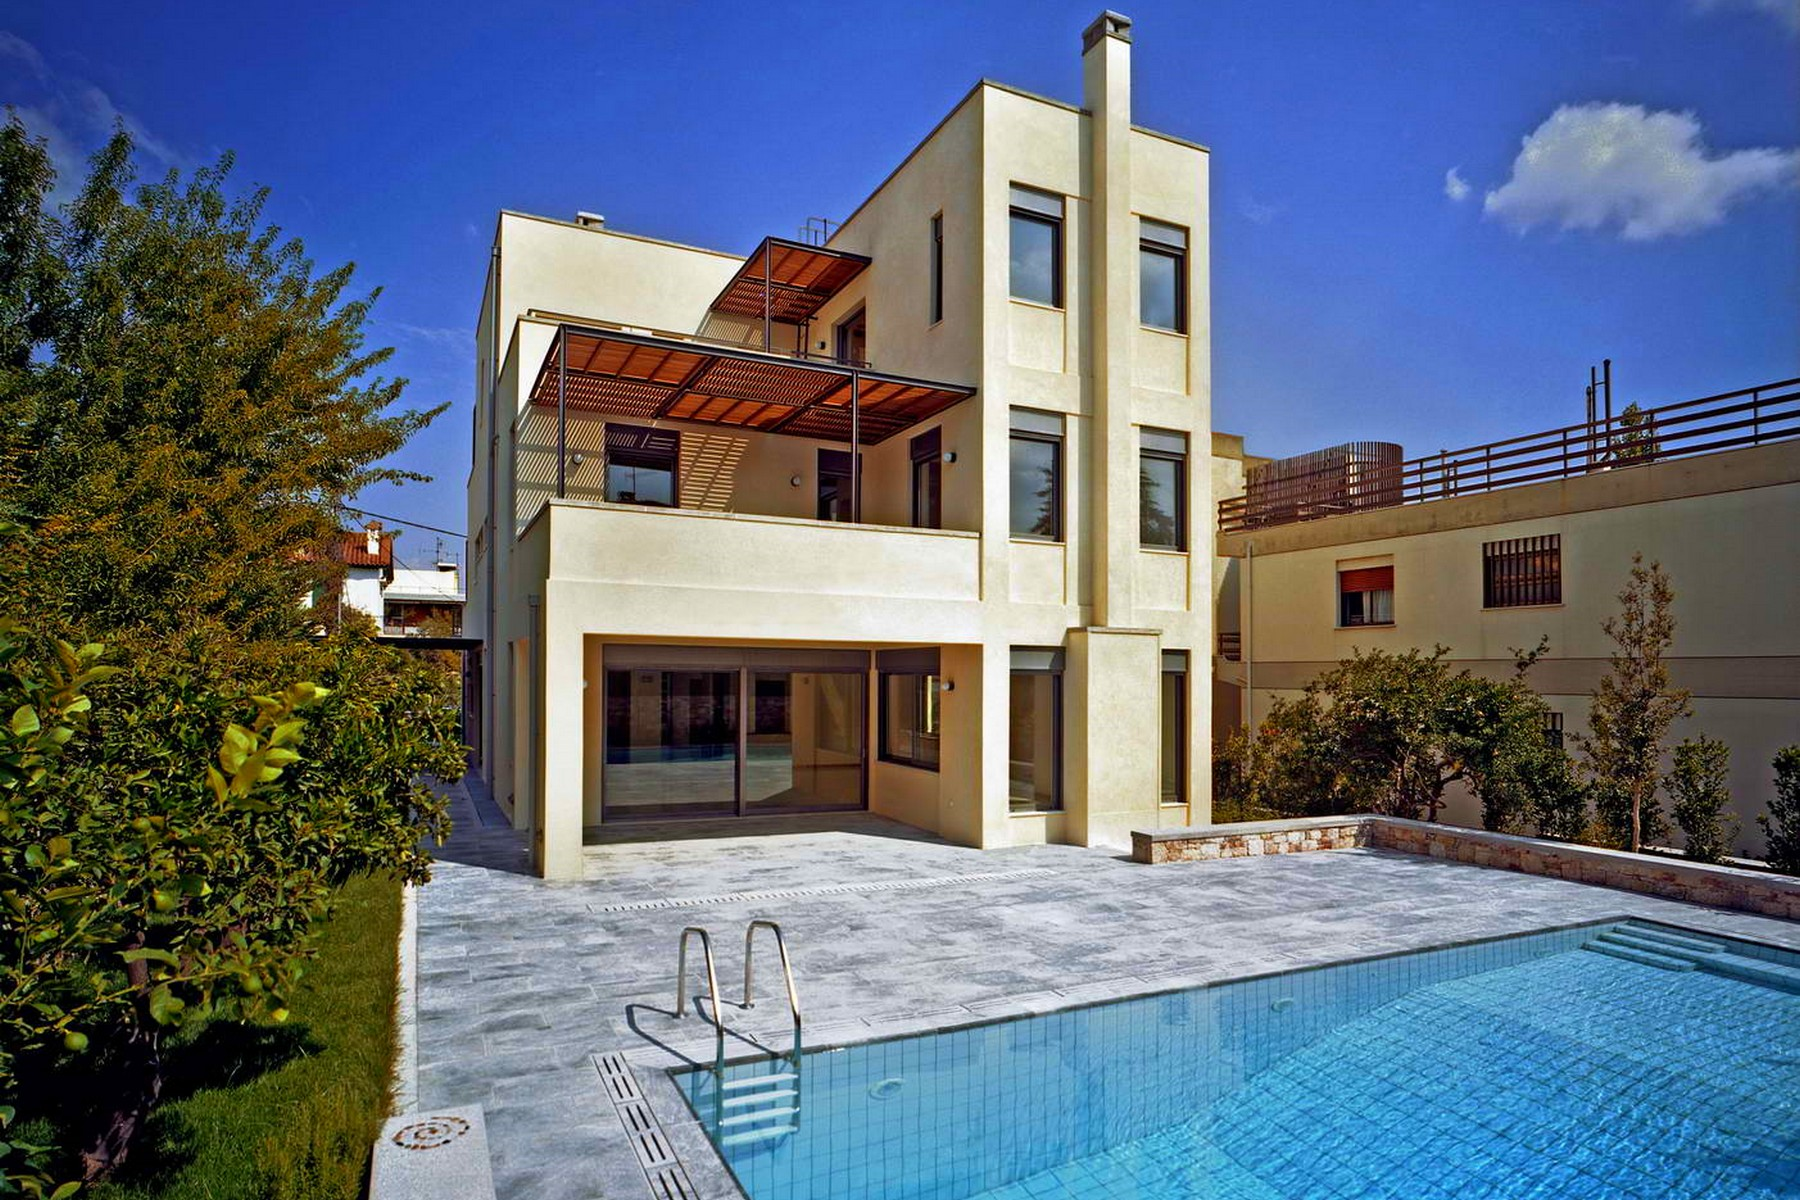 Single Family Home for Sale at Minimal Villa in Filothei Filothei, Athens, Greece Other Attiki, Attiki 15237 Greece